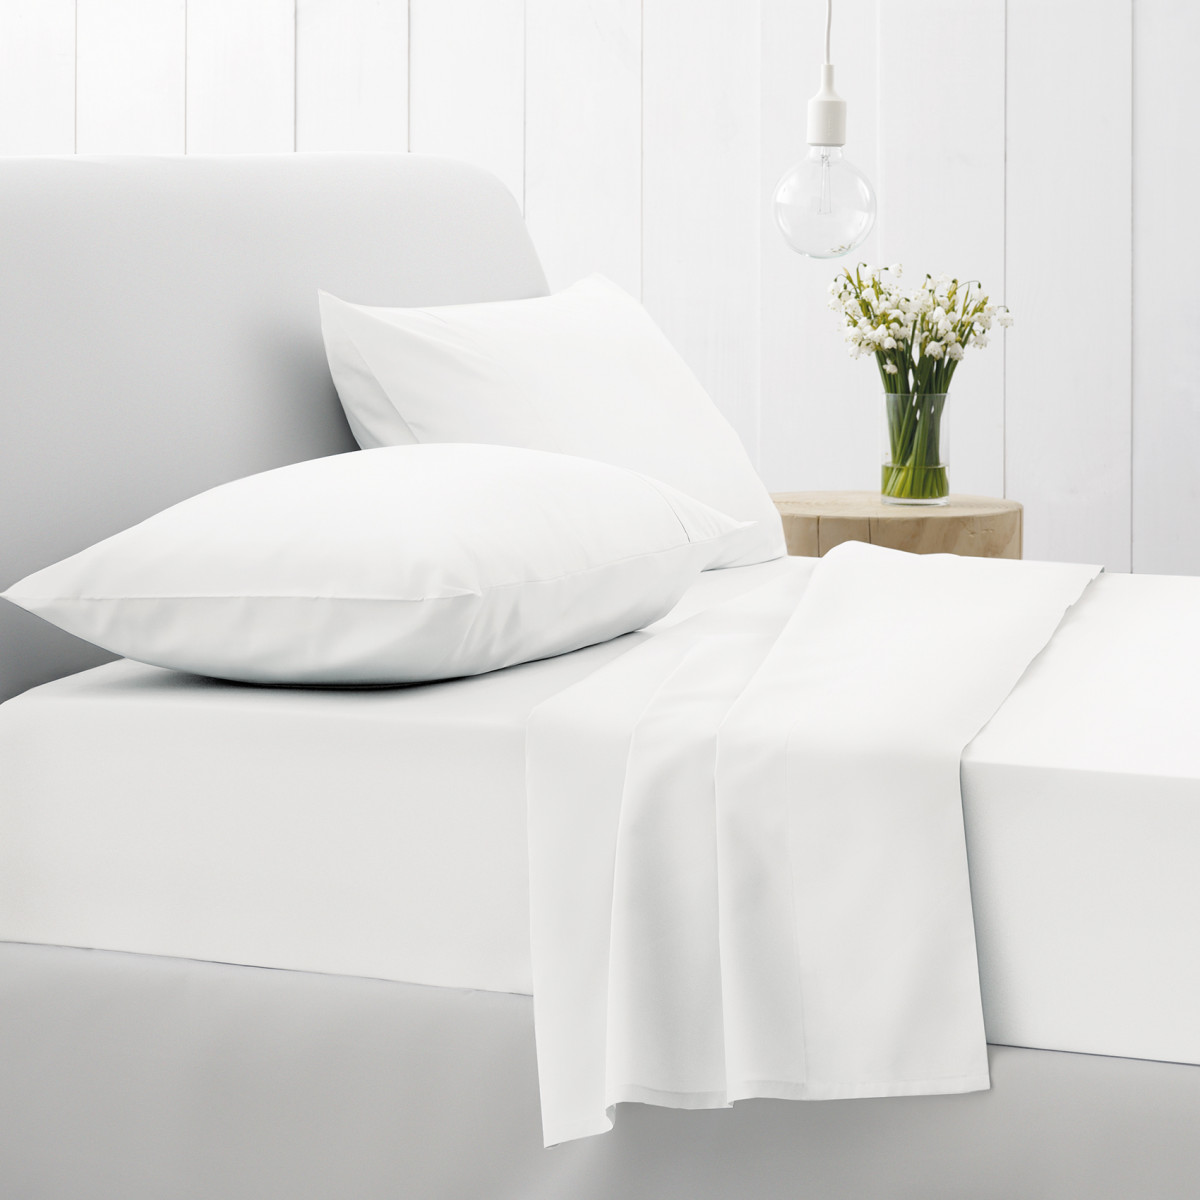 Sheridan 500tc Sateen Flat Sheet - Snow